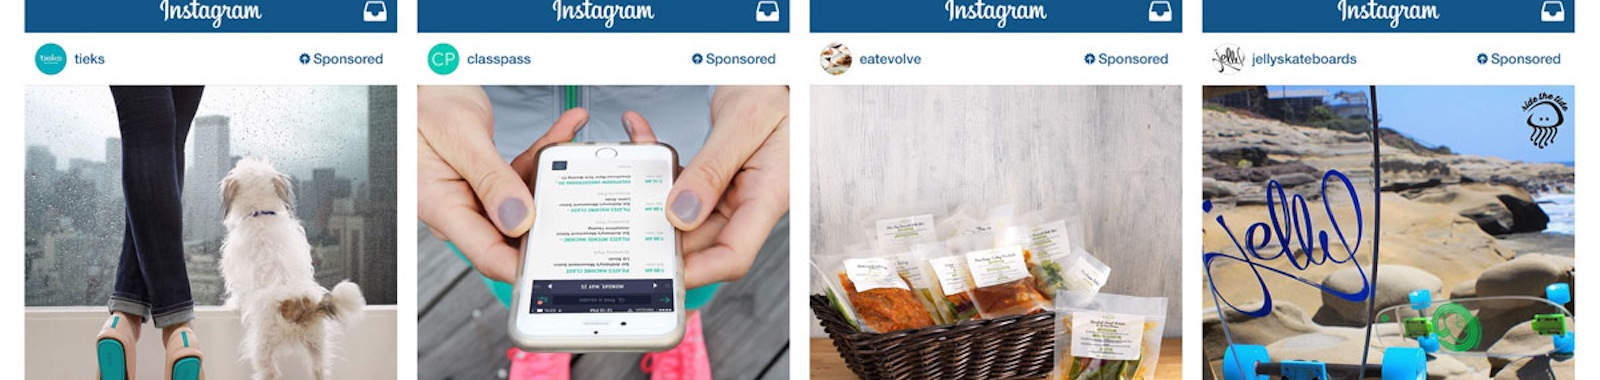 3D Touch Instagram ads are on the way.